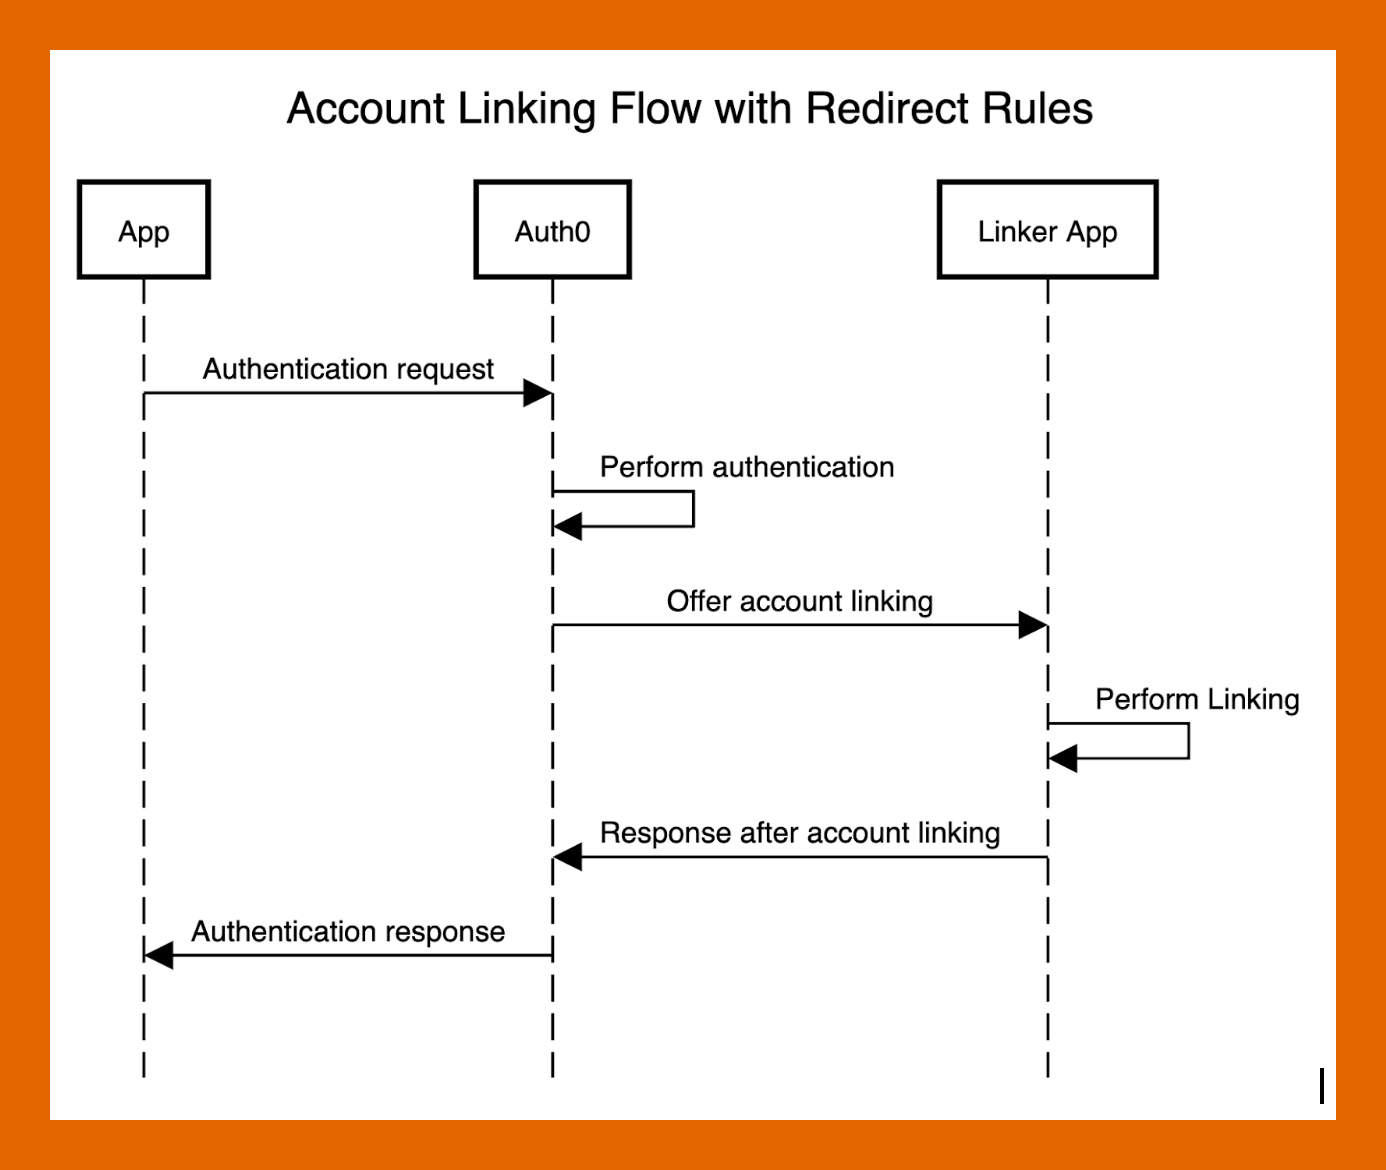 Account Linking Flow with Redirect Rules